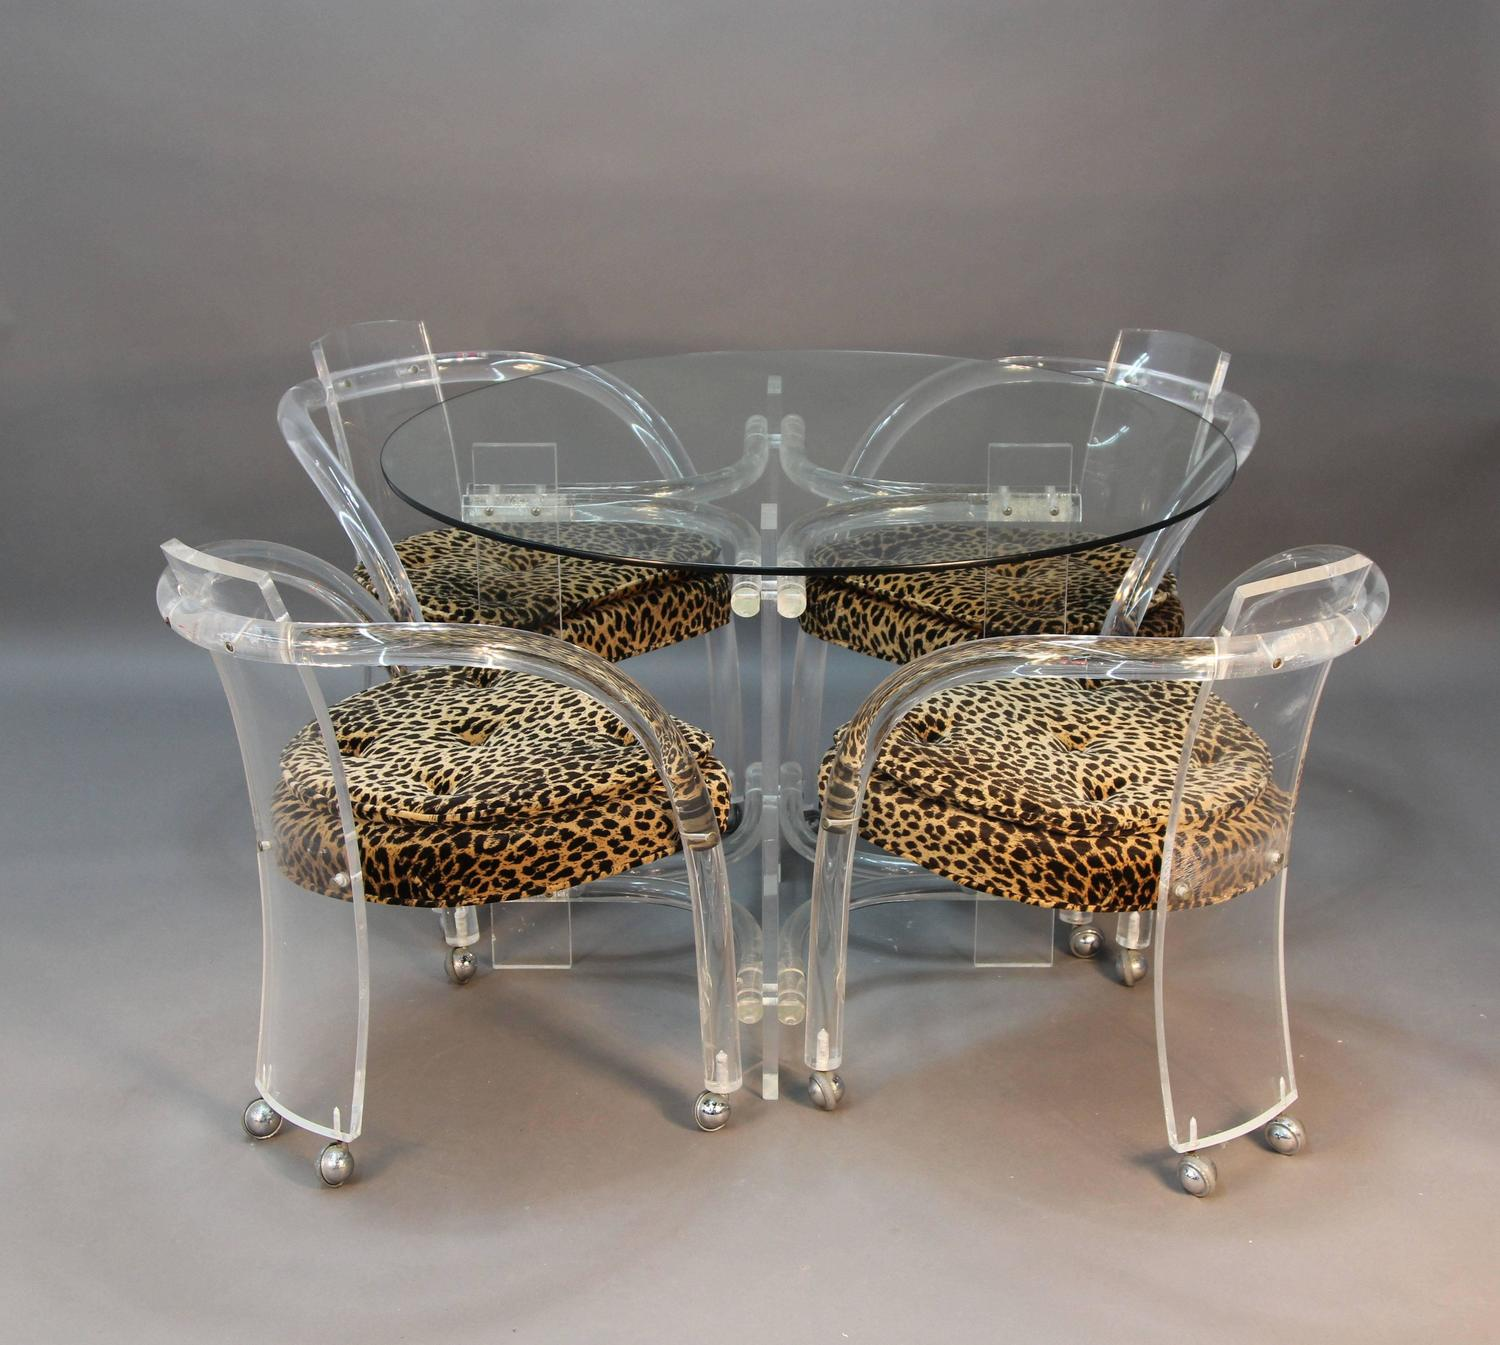 Lucite Table And Four Chair Set With Leopard Print Seats